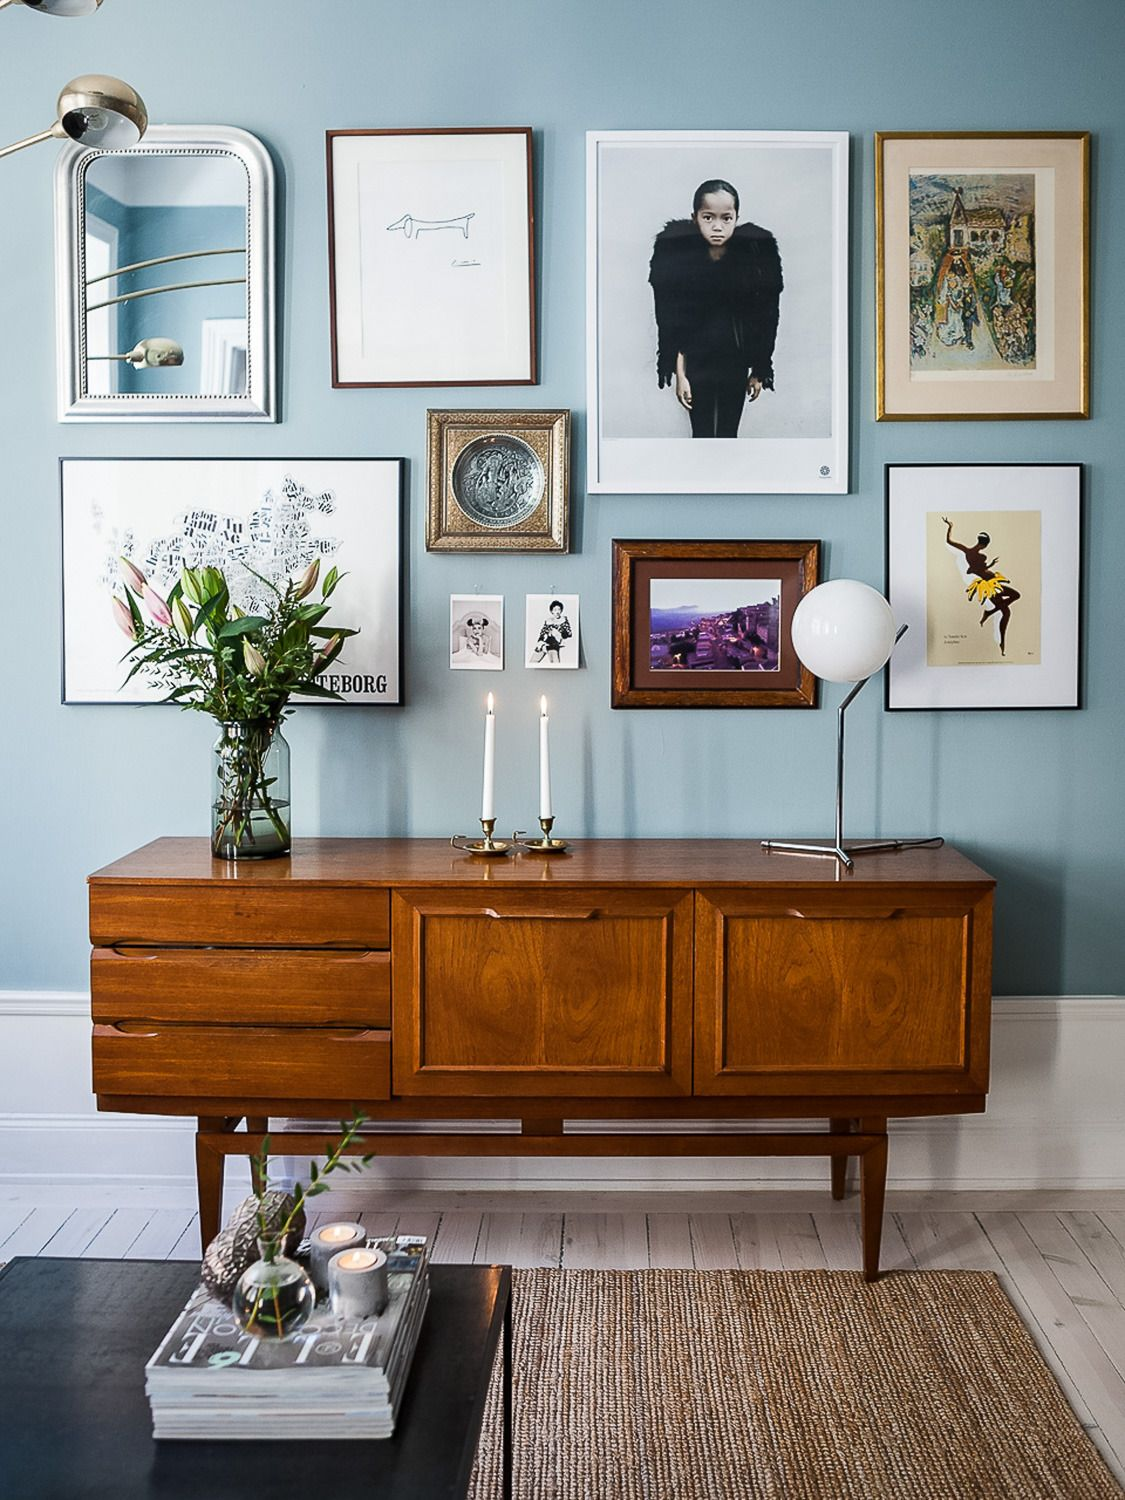 27 Chic Bohemian Interior Design You Will Want To Try | Peeping ...